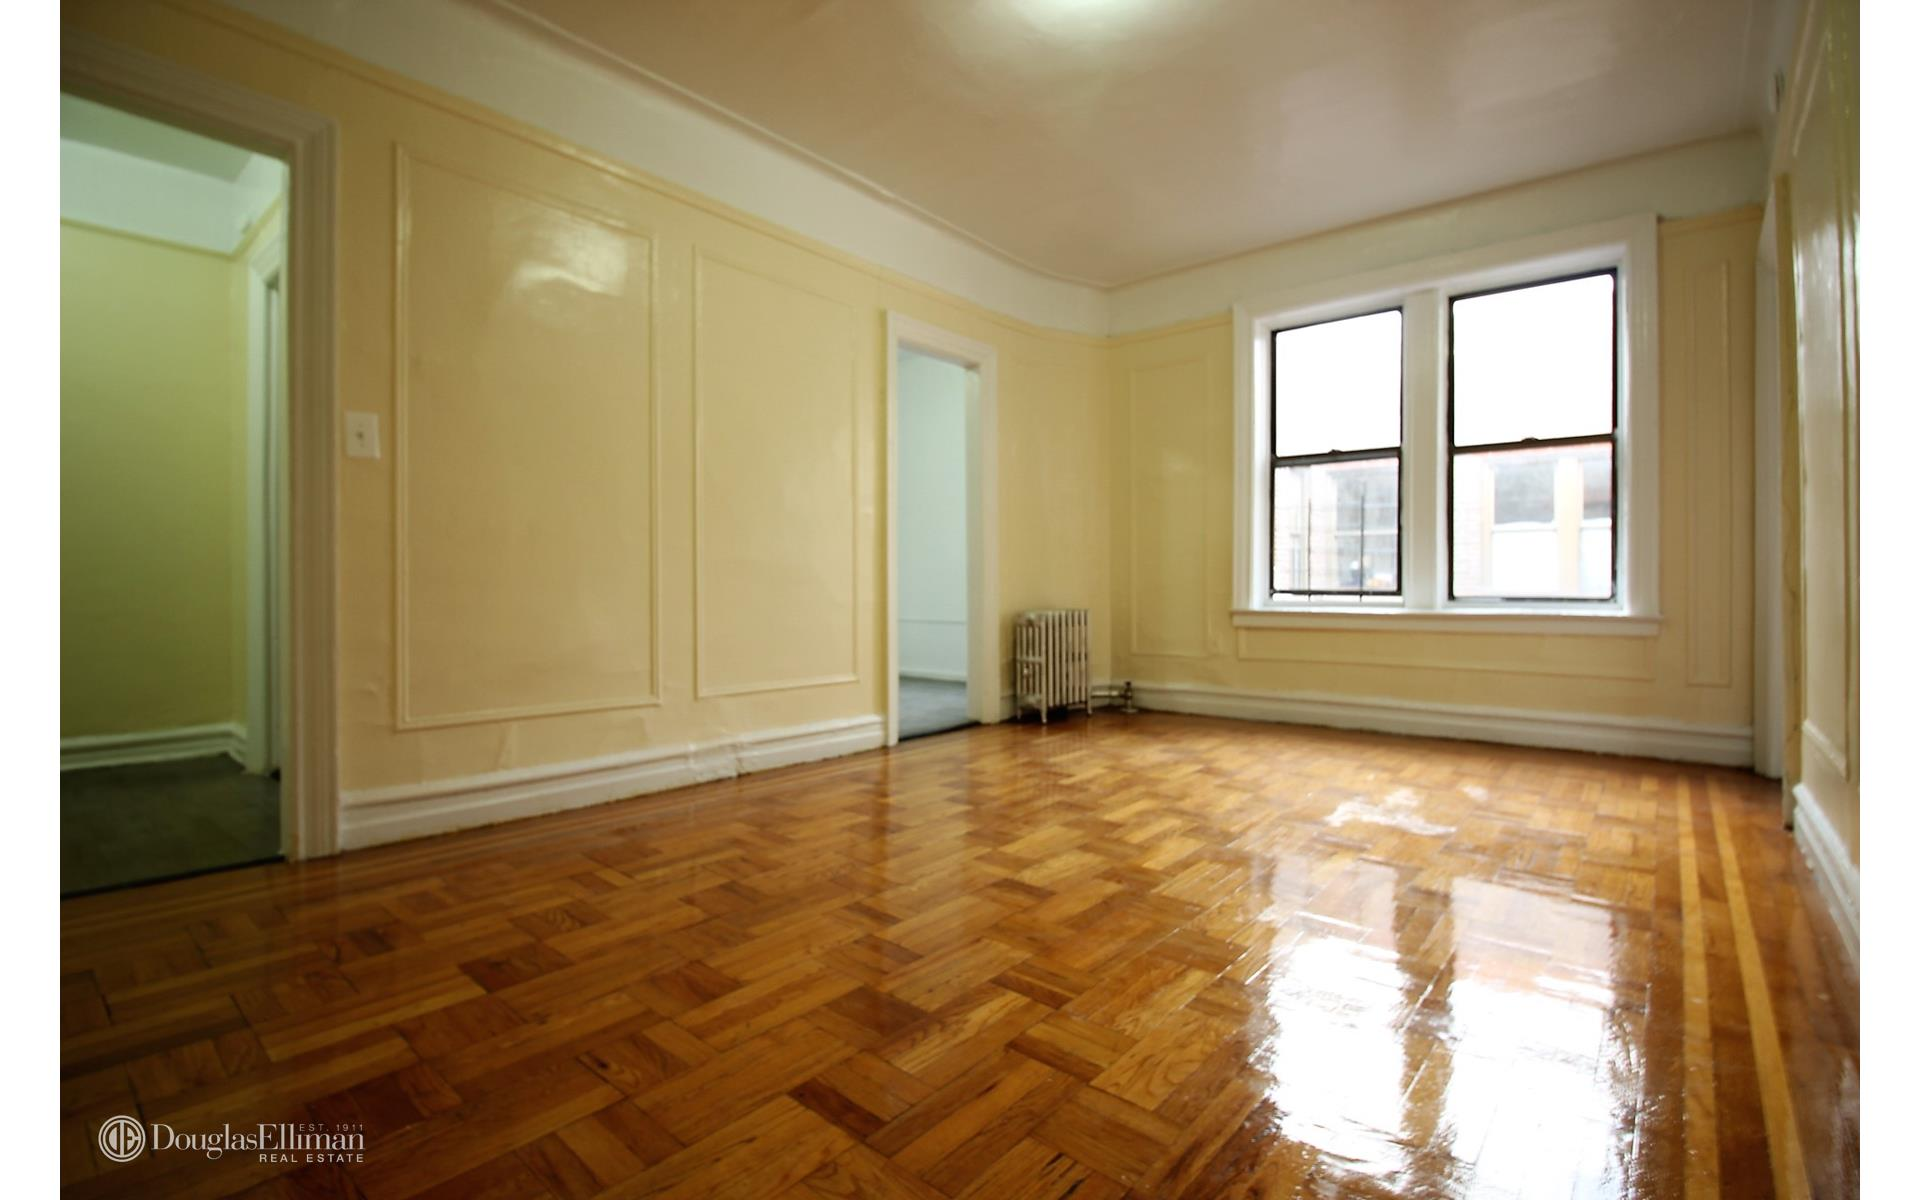 Inwood 1 bedroom rental at 25 cumming st new york ny for 11 east broadway 13th floor new york ny 10038